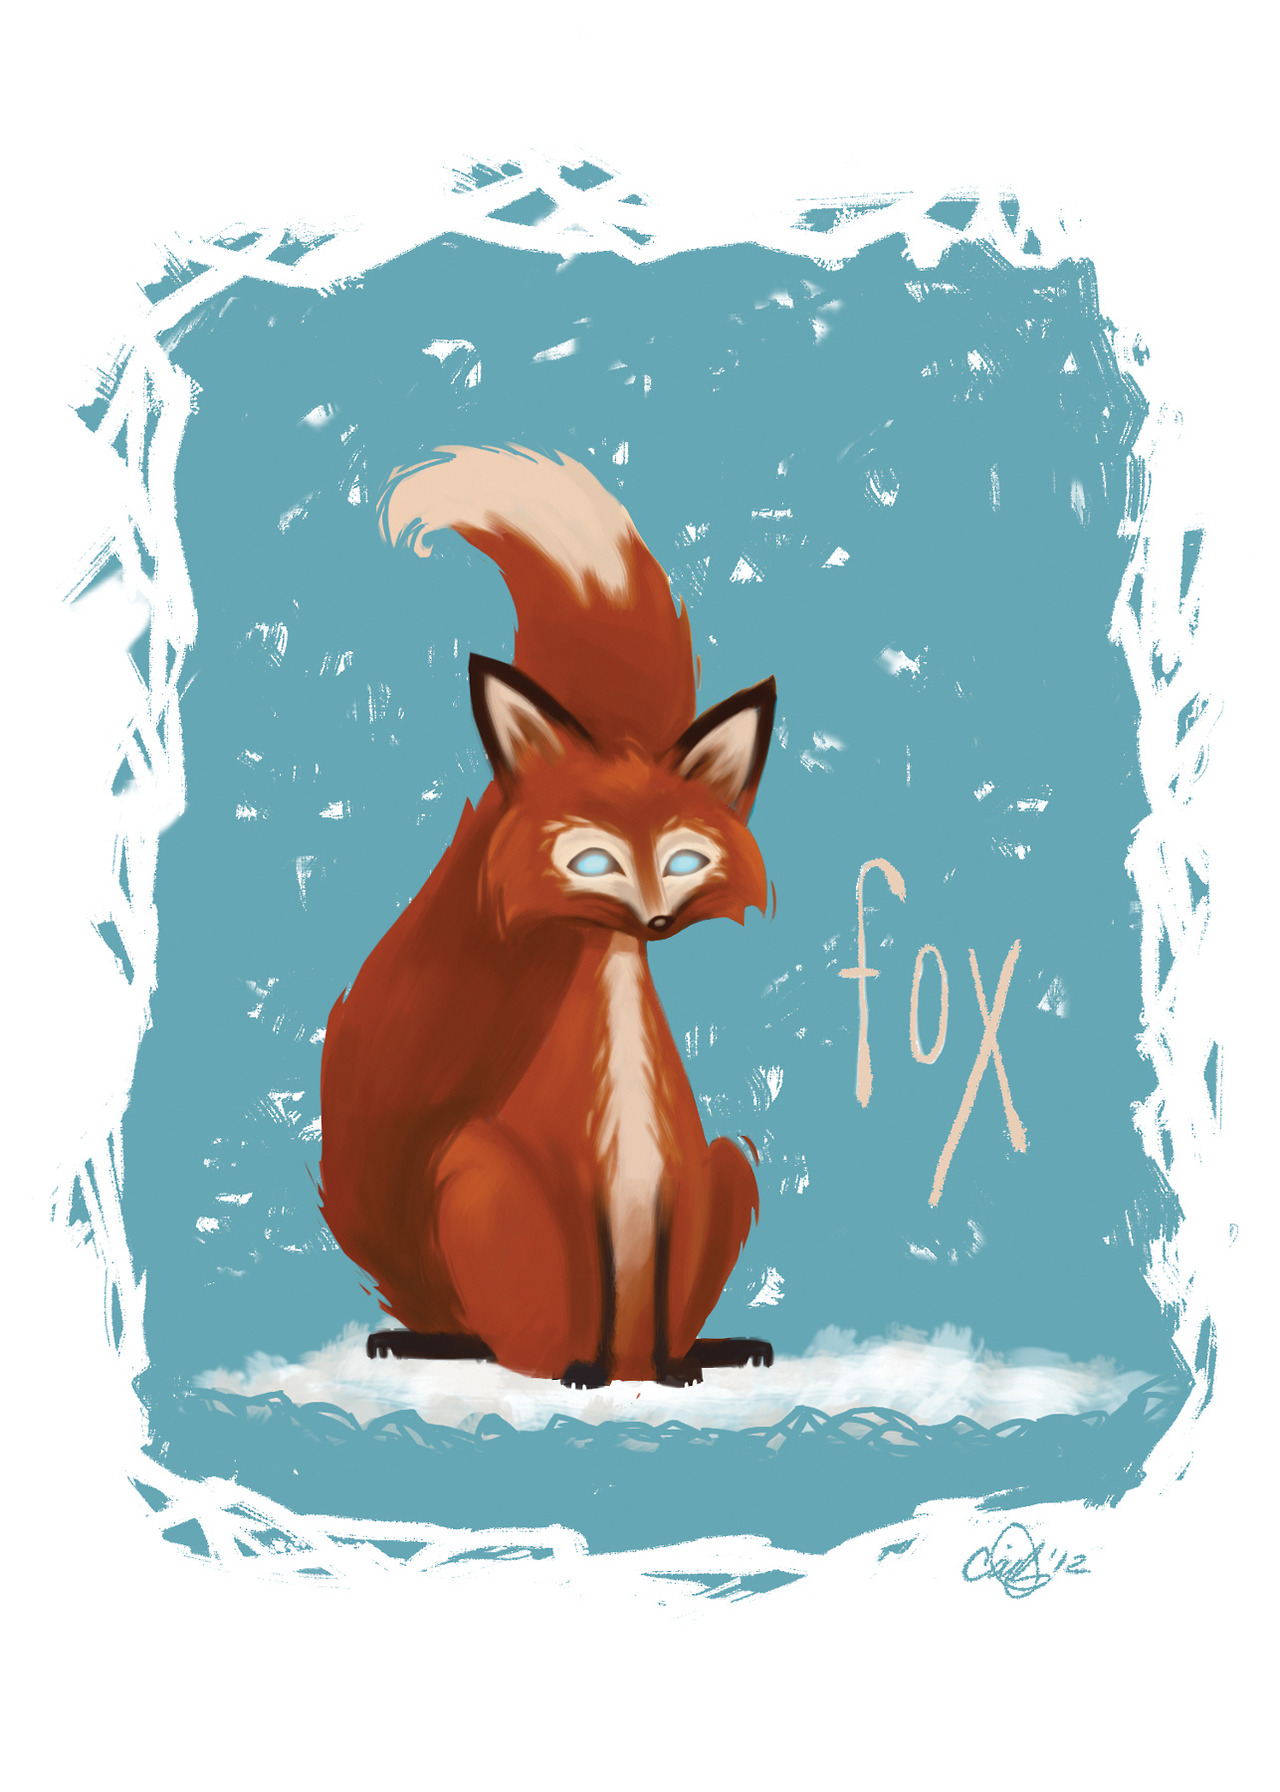 hello tumblr! a little fox i drew.